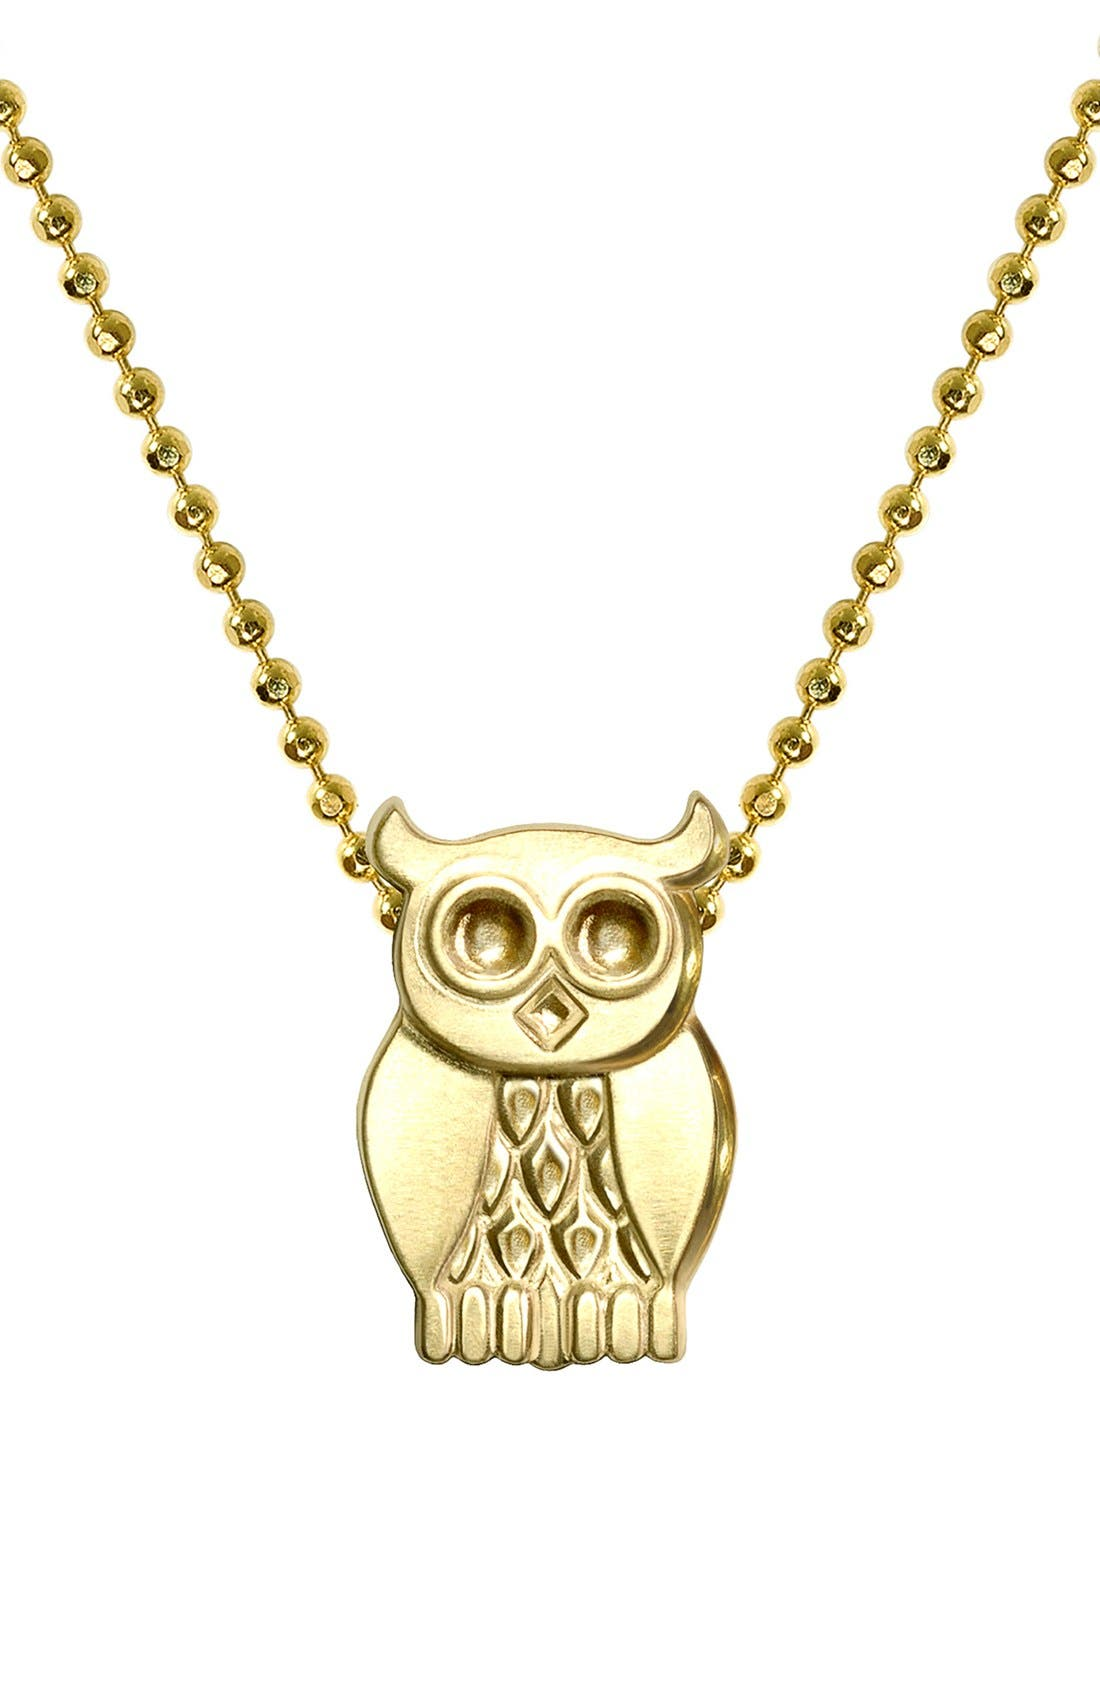 Alternate Image 1 Selected - Alex Woo 'Little Seasons' Owl Pendant Necklace